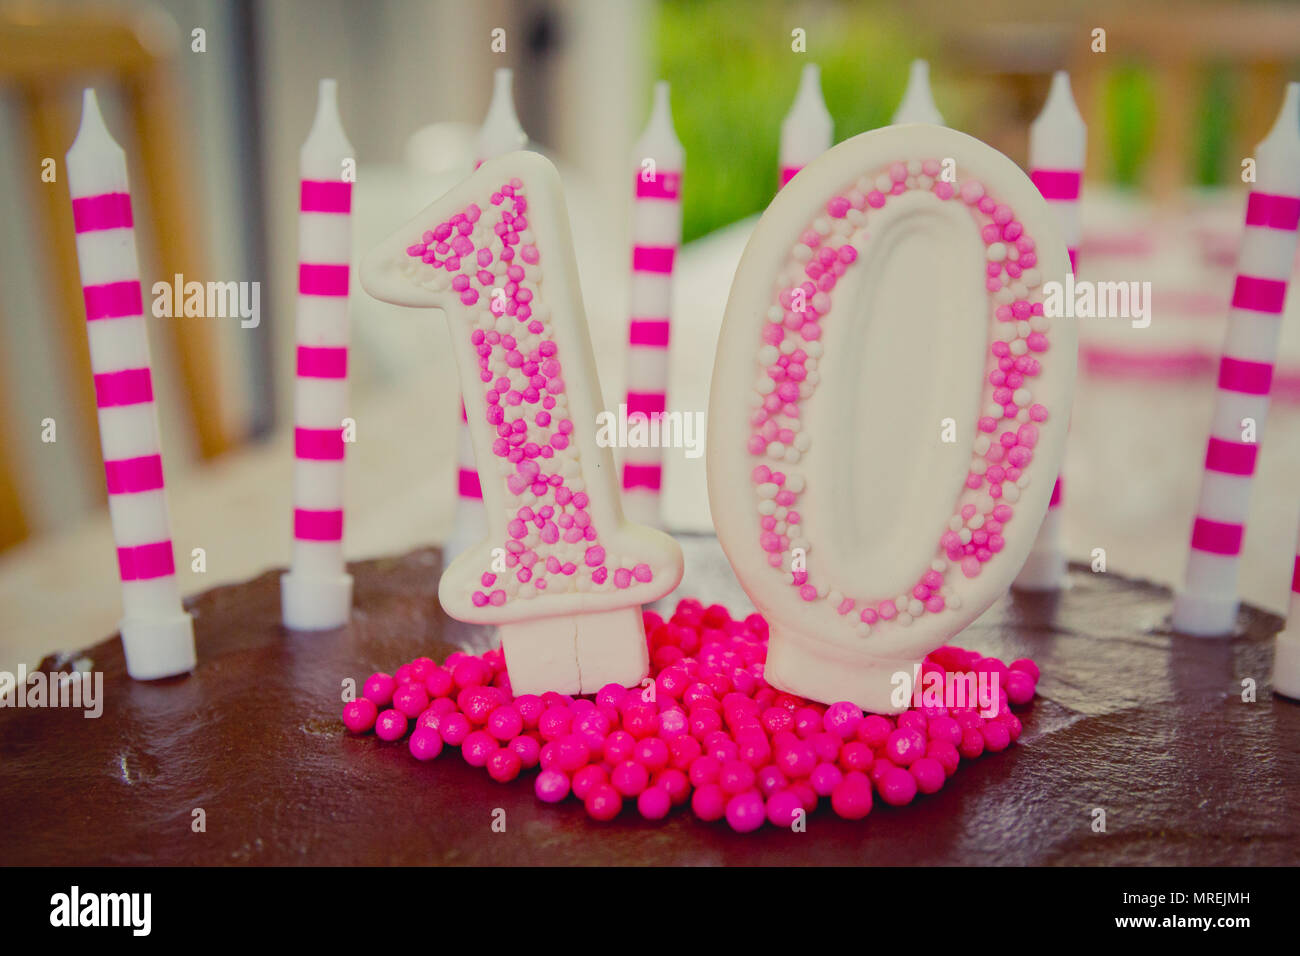 Cake decoration in the figure of the number 10, made of sugar dough and candy in white and pink. The decoration placed on brown chocolate cake. There  - Stock Image